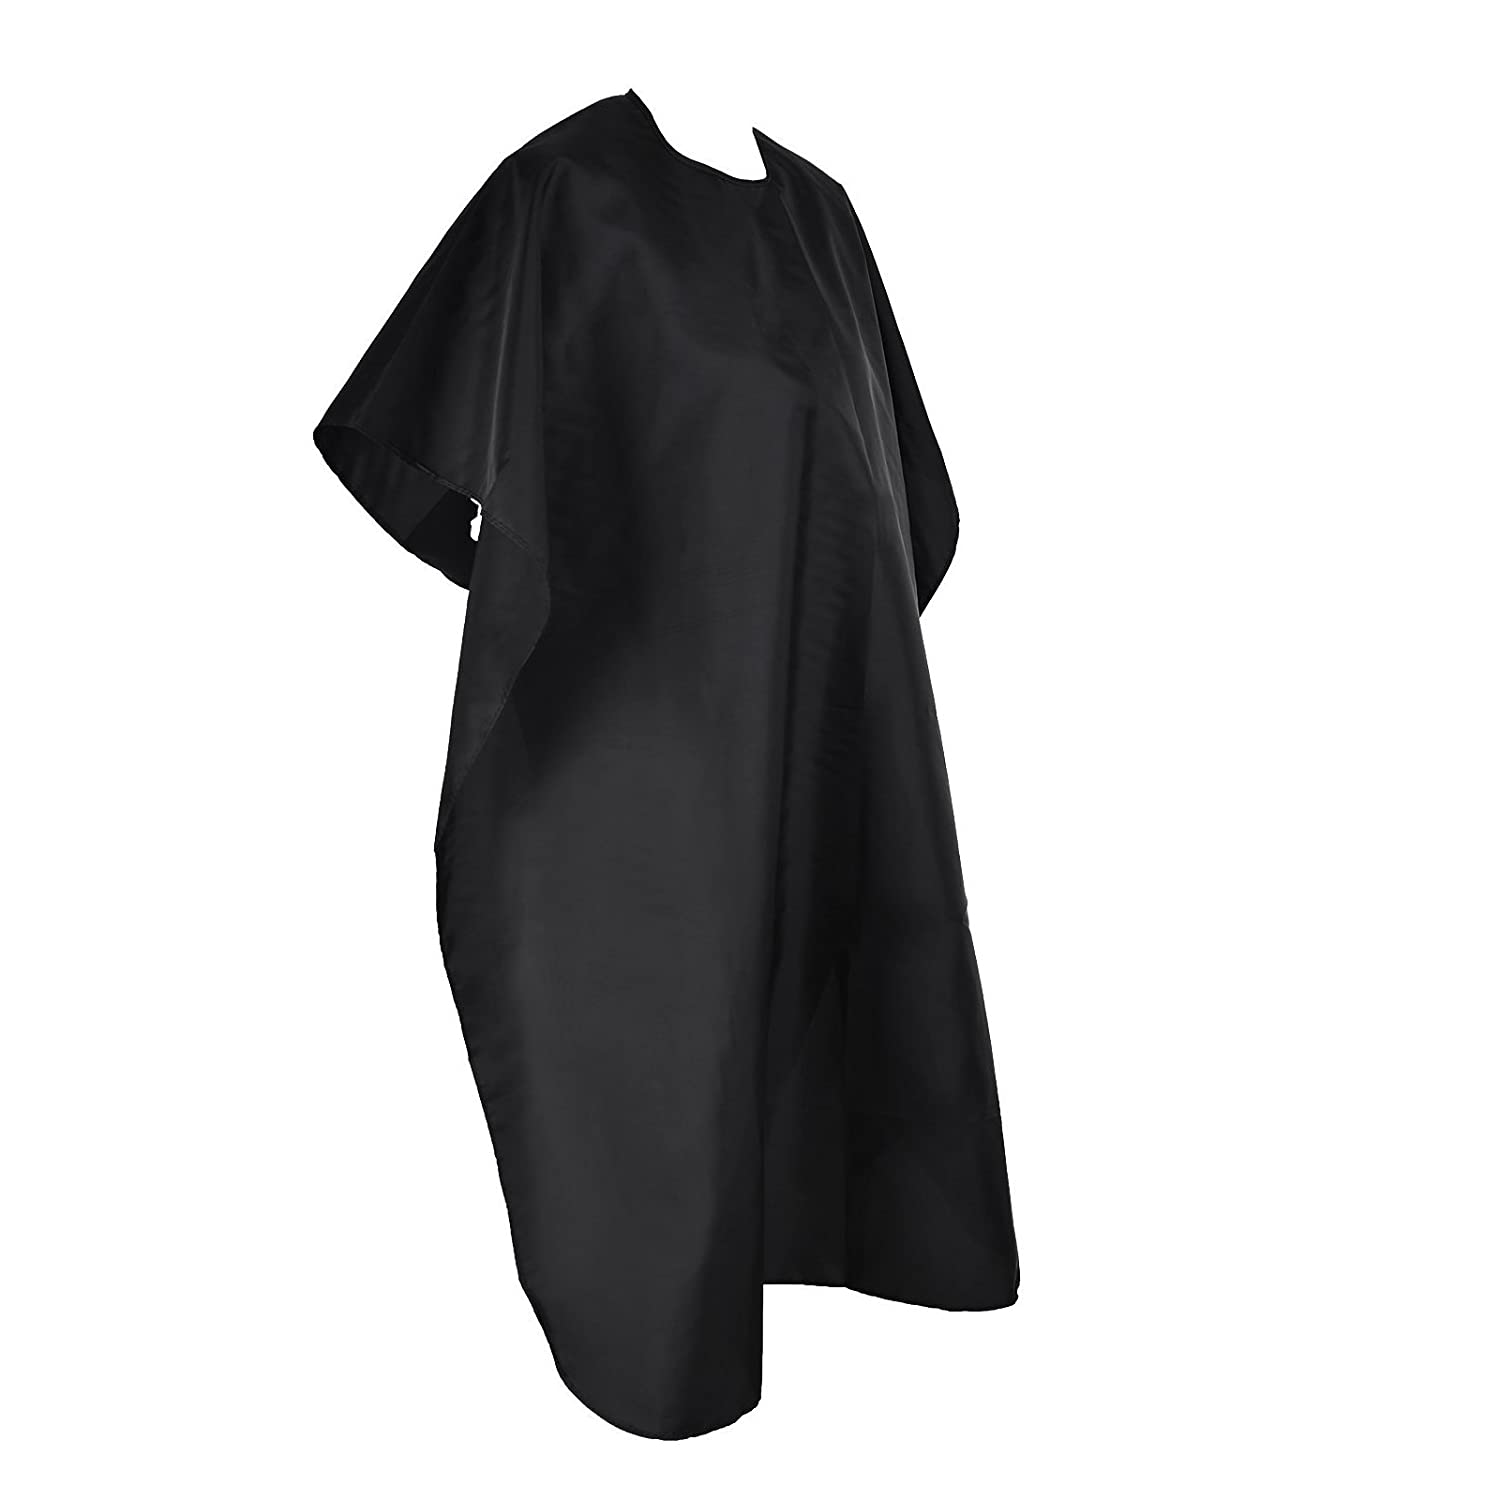 SunTrade Professional Hair Cutting Salon Nylon Cape, Waterproof, 53 x 37, Black 53 x 37 Sun Trade